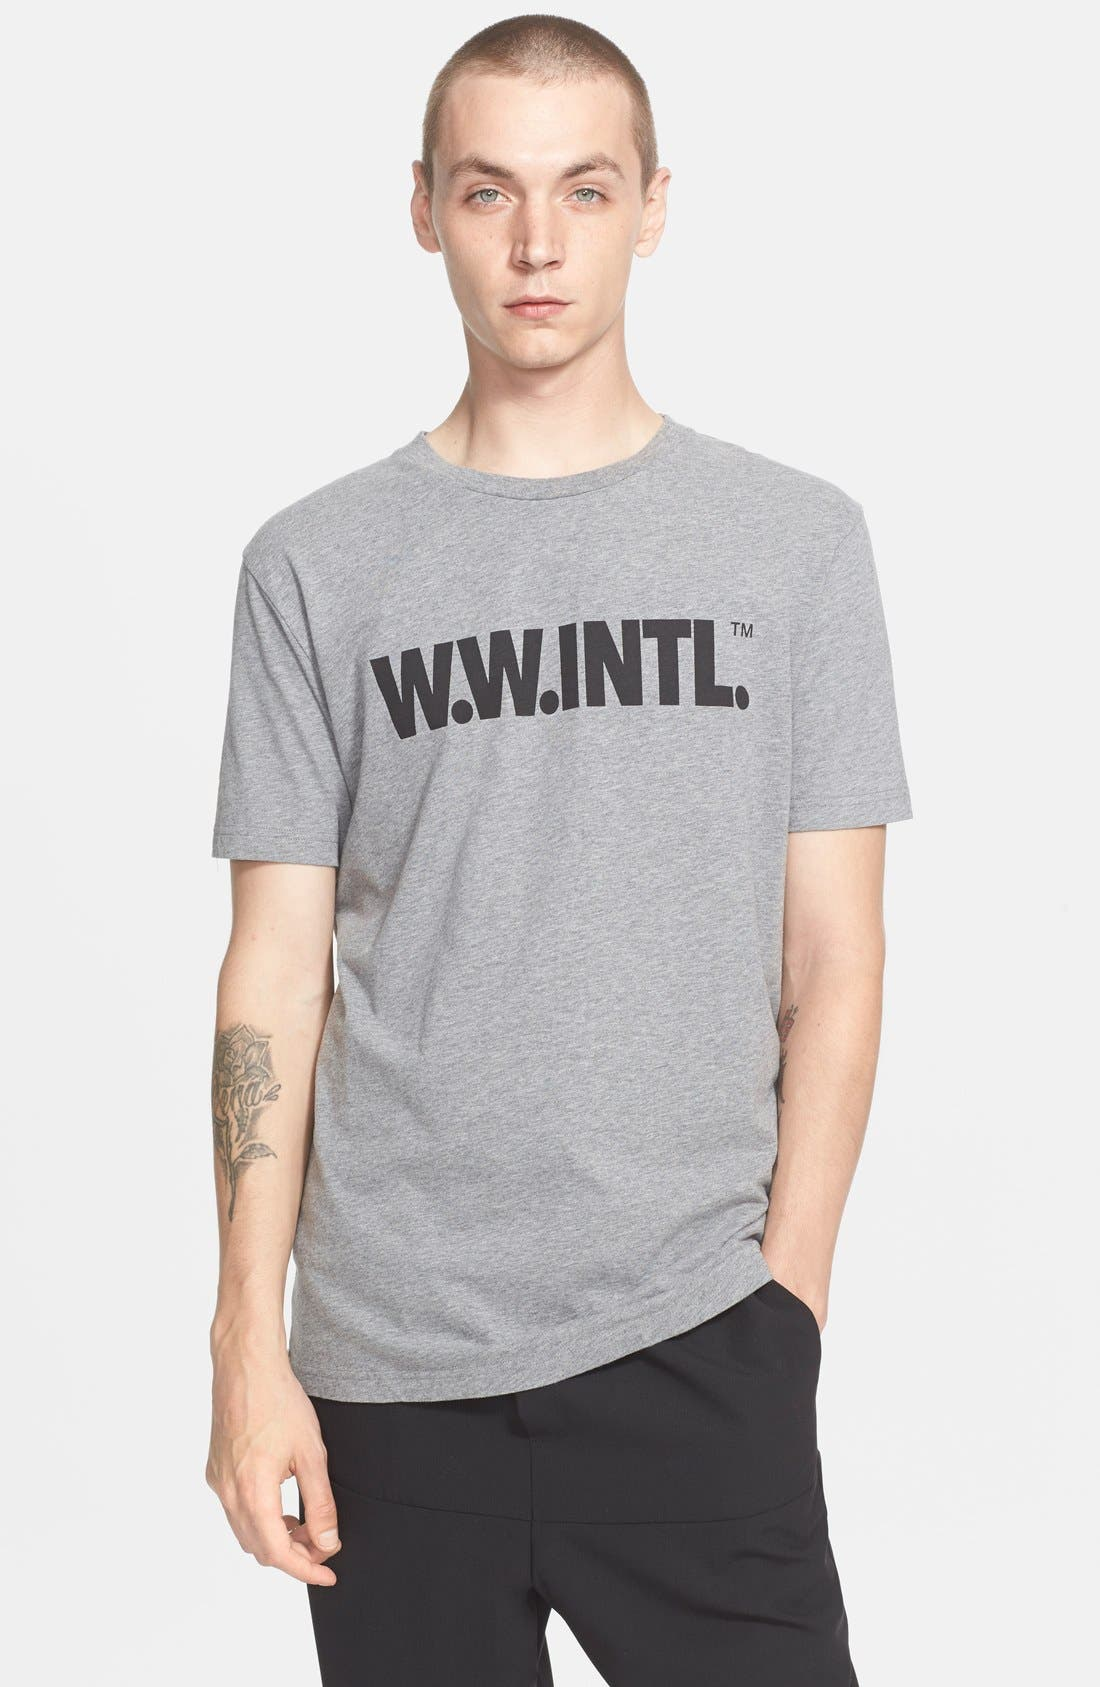 'W.W. INTL' Graphic T-Shirt, Main, color, 020